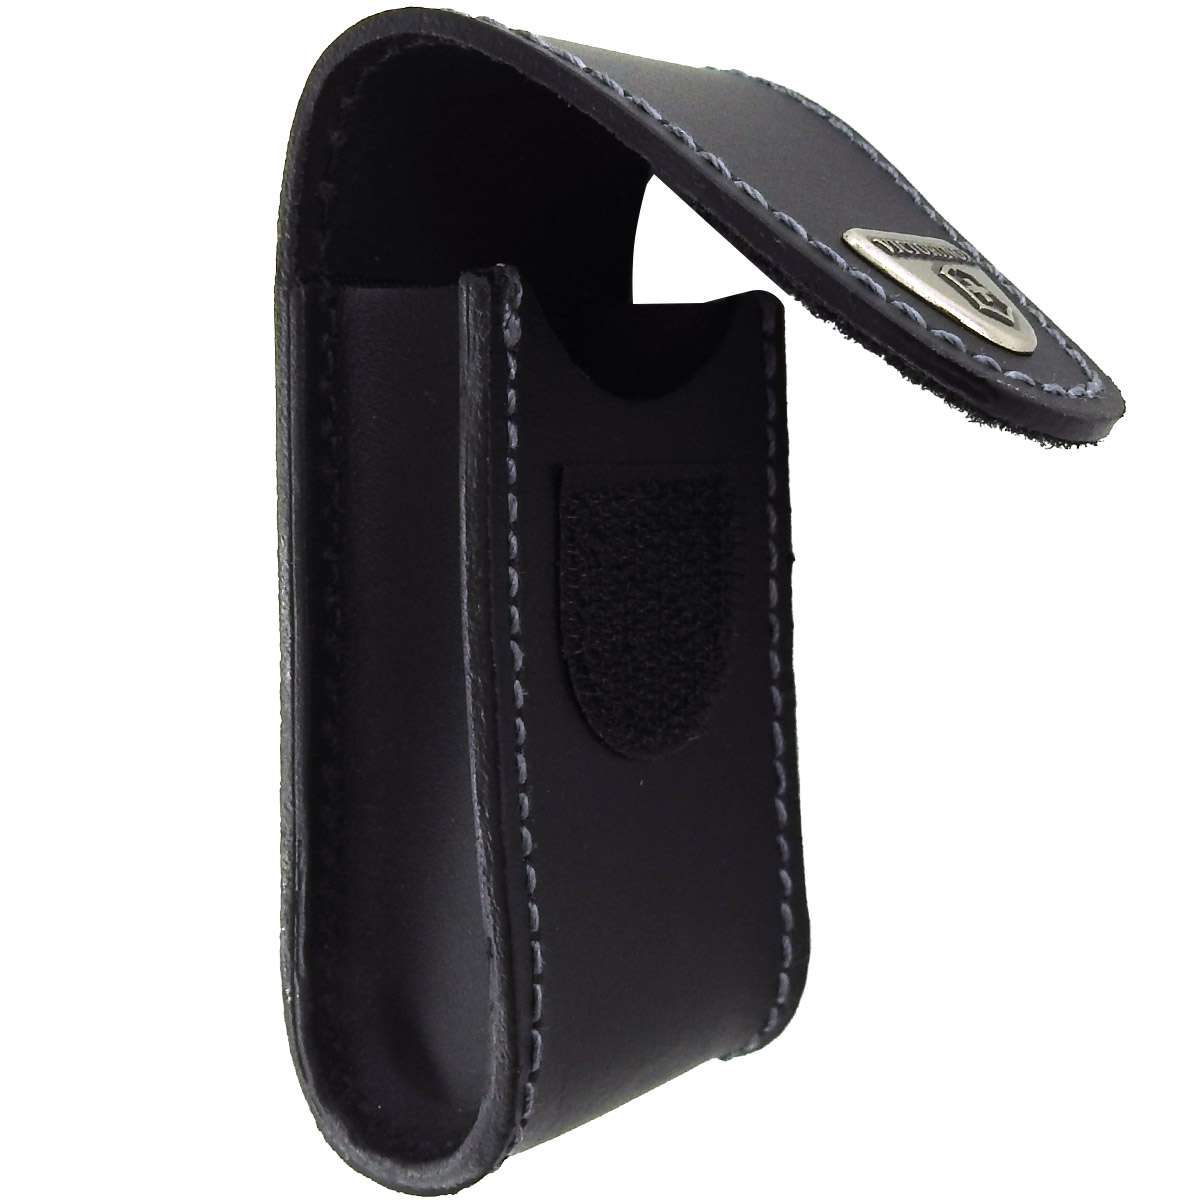 Victorinox Leather Pouch 98mm - Black